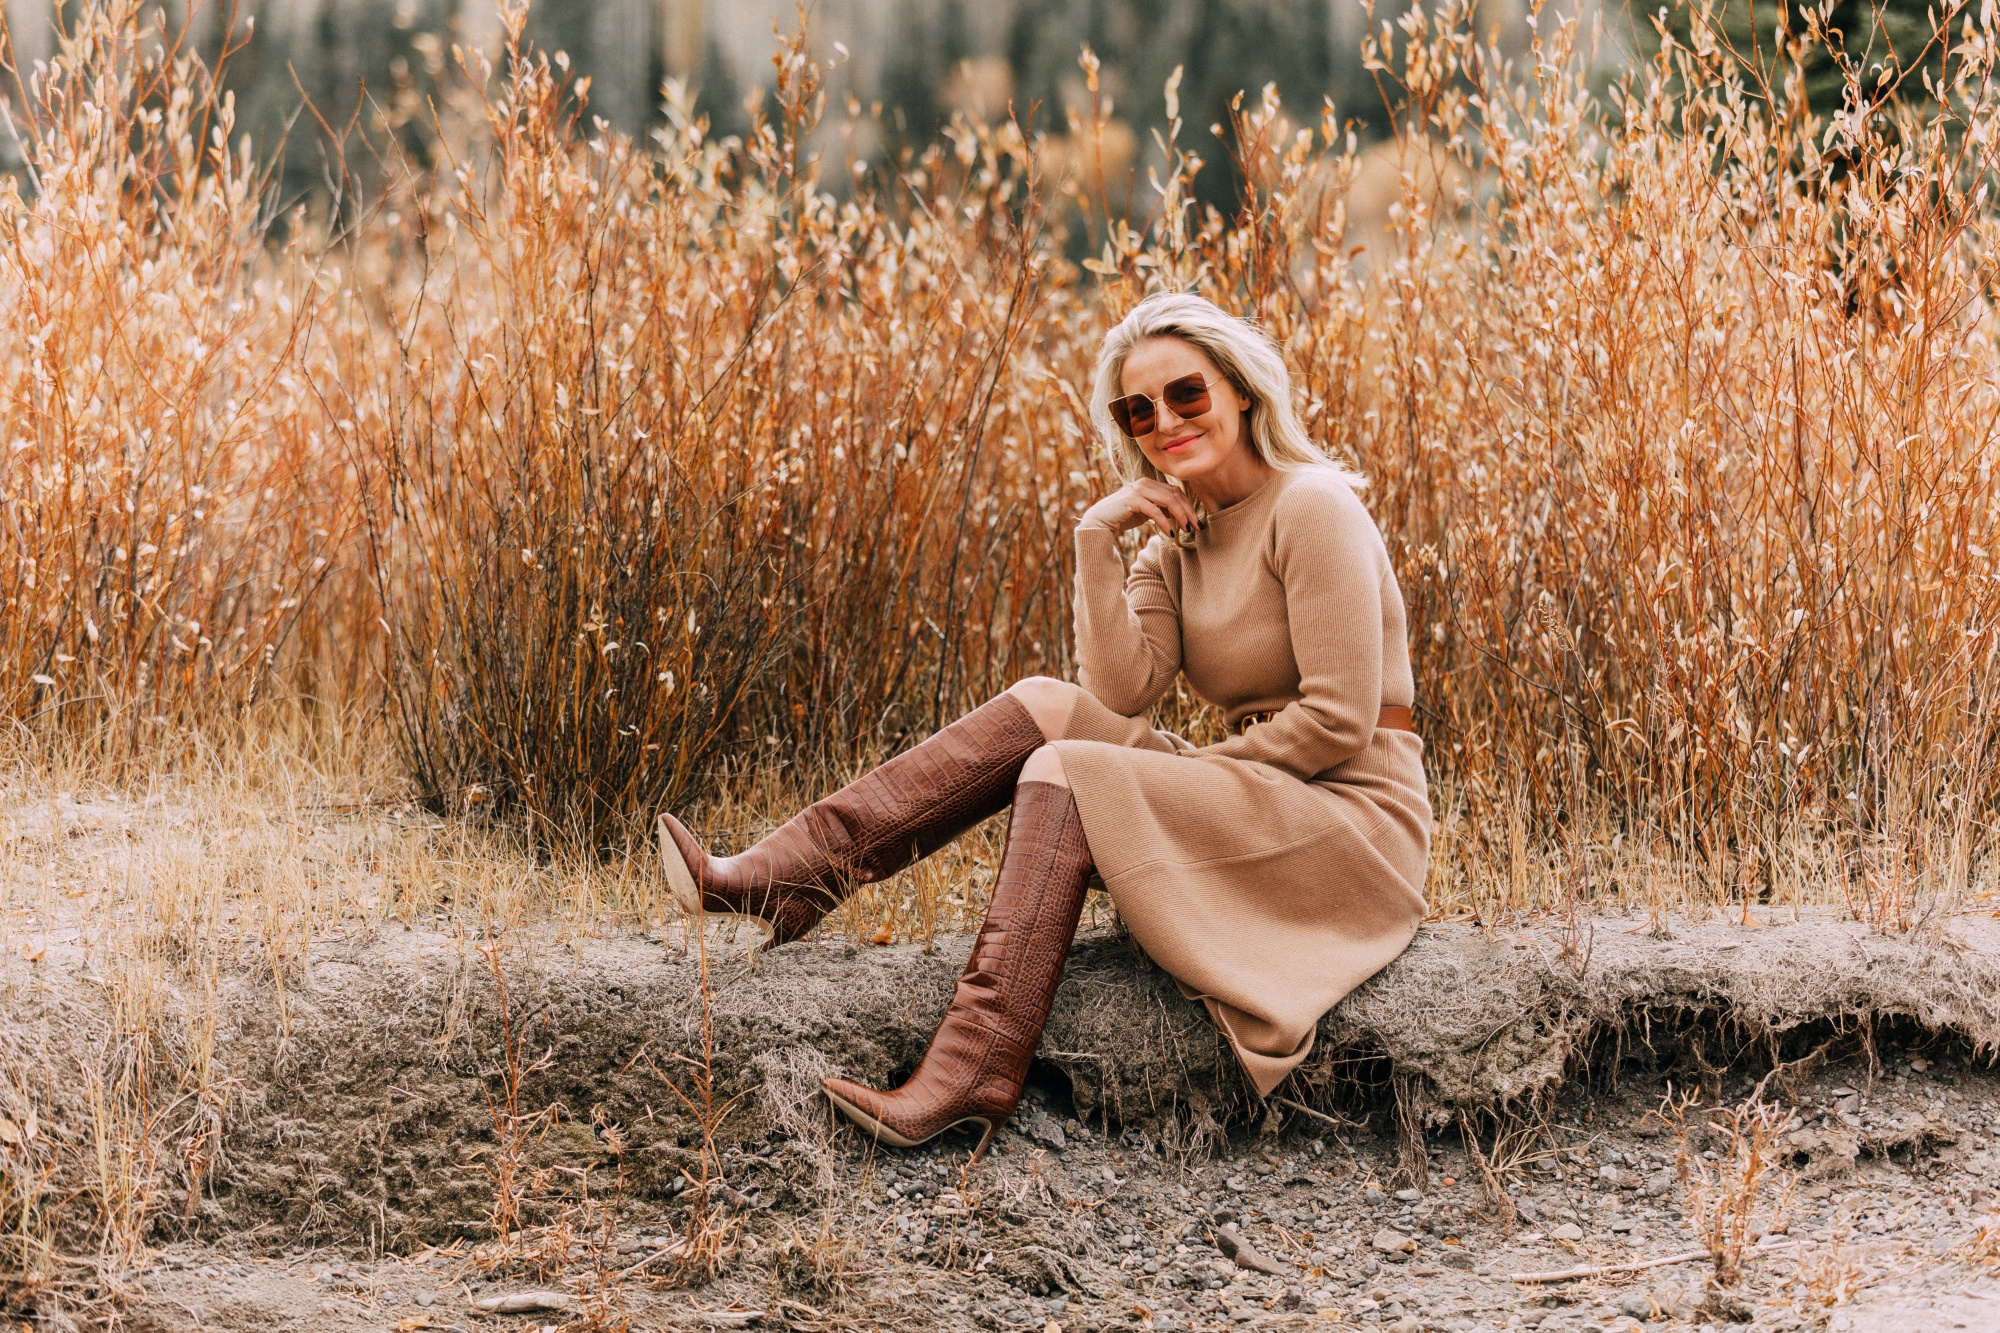 Killer Brown Boots, Fashion Blogger Erin Busbee of BusbeeStyle.com wearing a camel sweater dress by Nordstrom Signature with a Valentino waist belt and brown Paris Texas croc-embossed boots in Telluride, CO